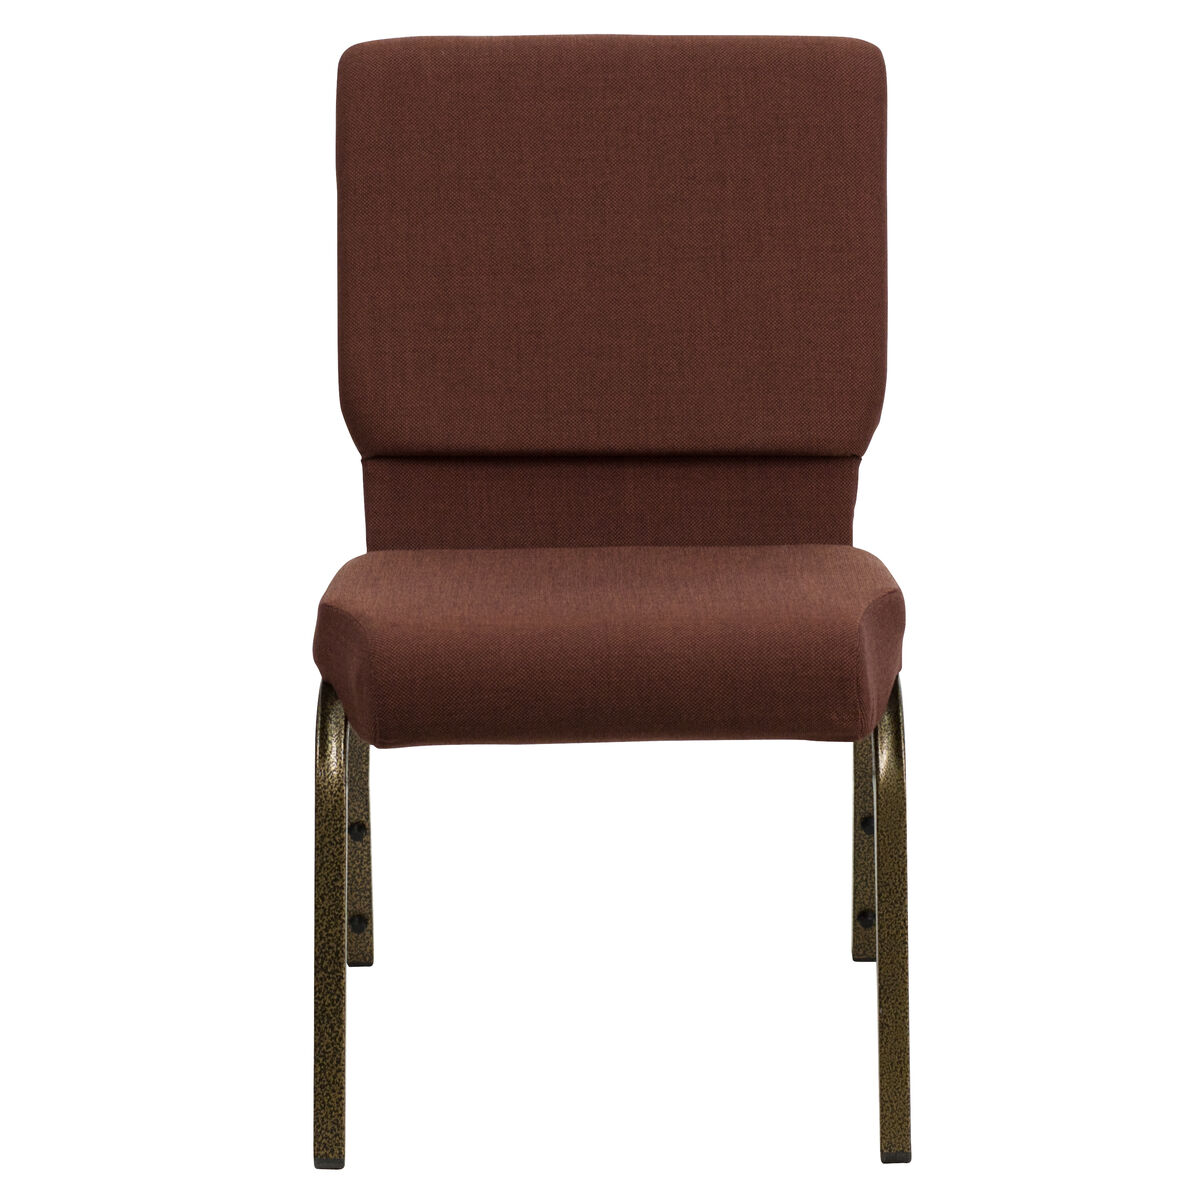 Brown Fabric Church Chair Fd Ch02185 Gv 10355 Gg